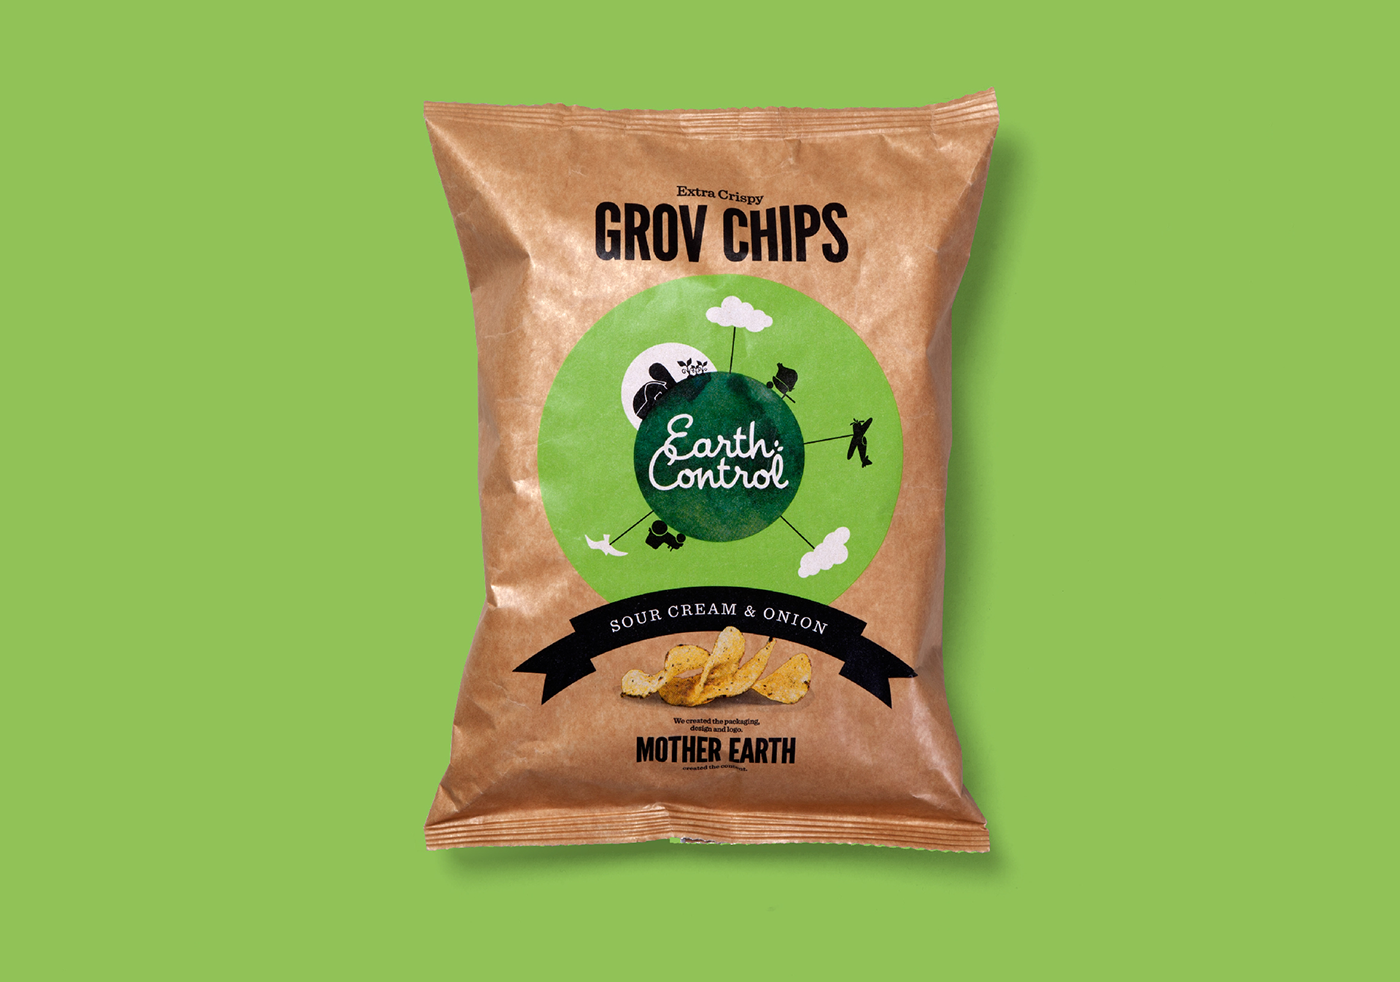 handcooked chips earth control universe handcooked chips Minimalism simple iconic CRISPS